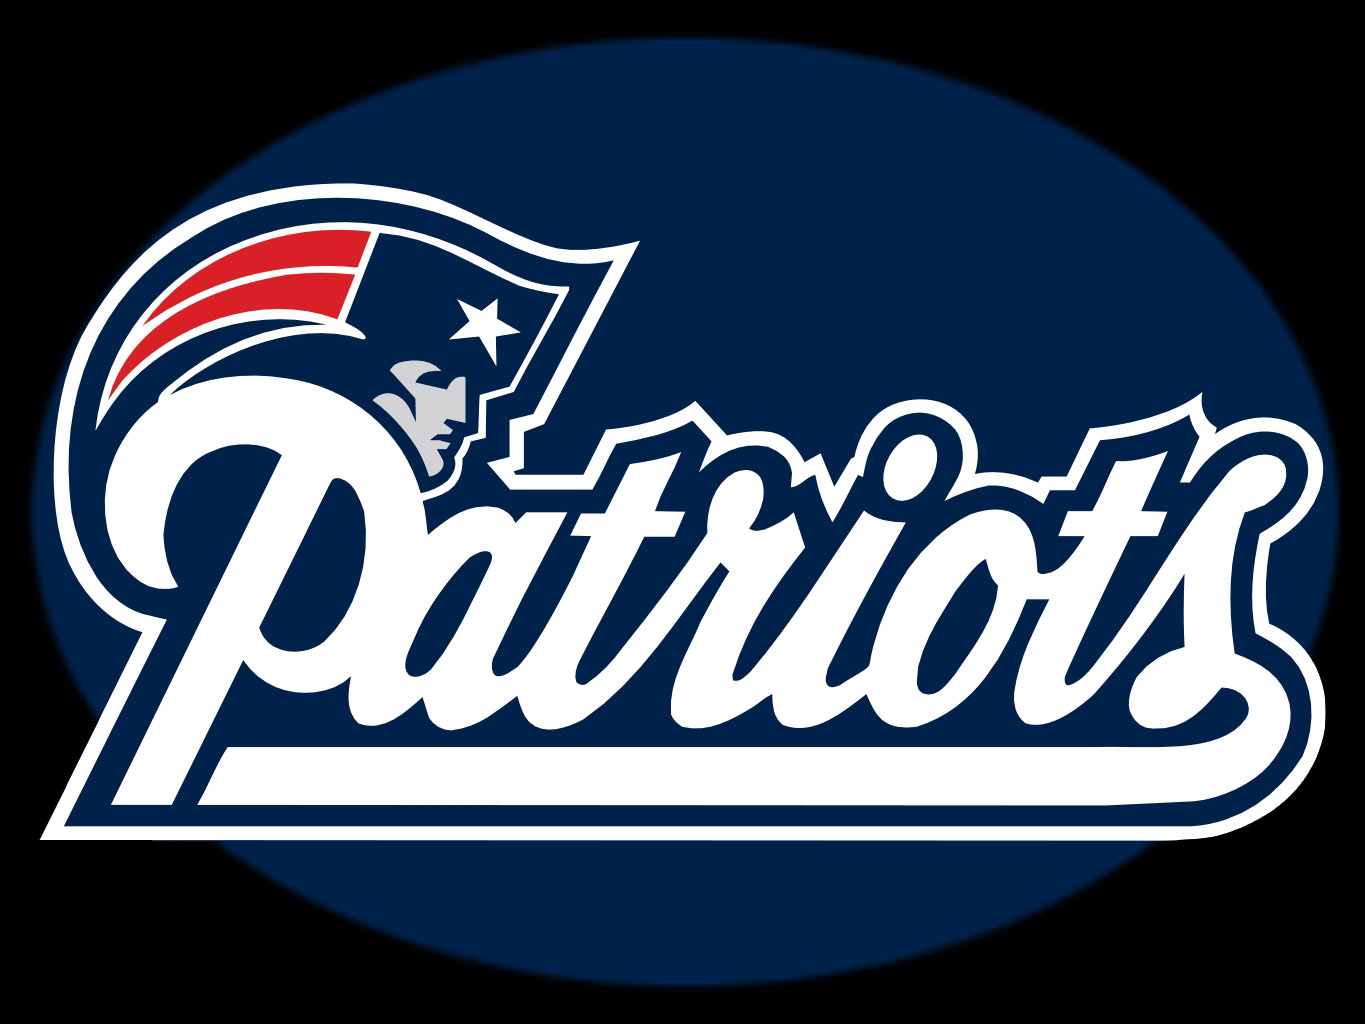 ... , Patriots Football Wallpaper hd wallpaper, background desktop